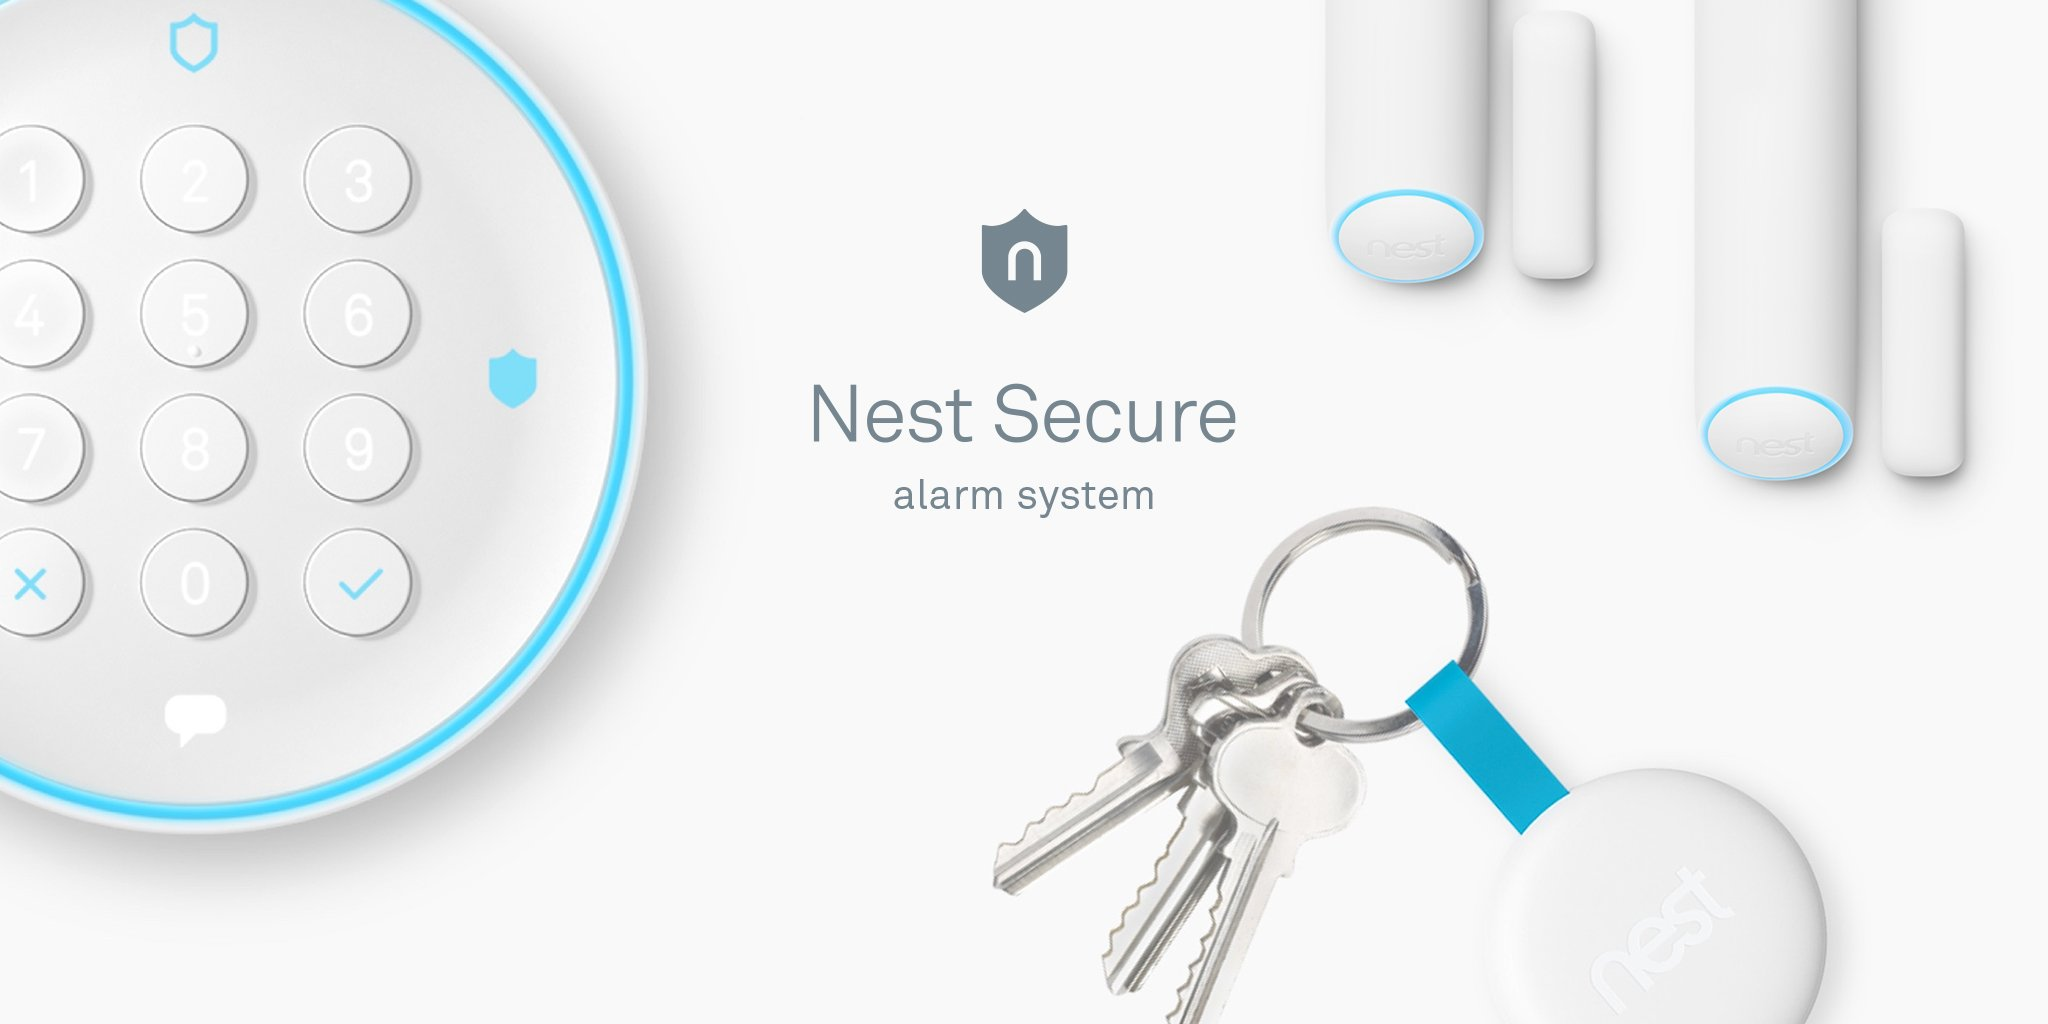 - Nest Secure - Is Mistral a next-gen mesh network Google Home Hub with ZigBee, or maybe even Thread? – Stacey on IoT